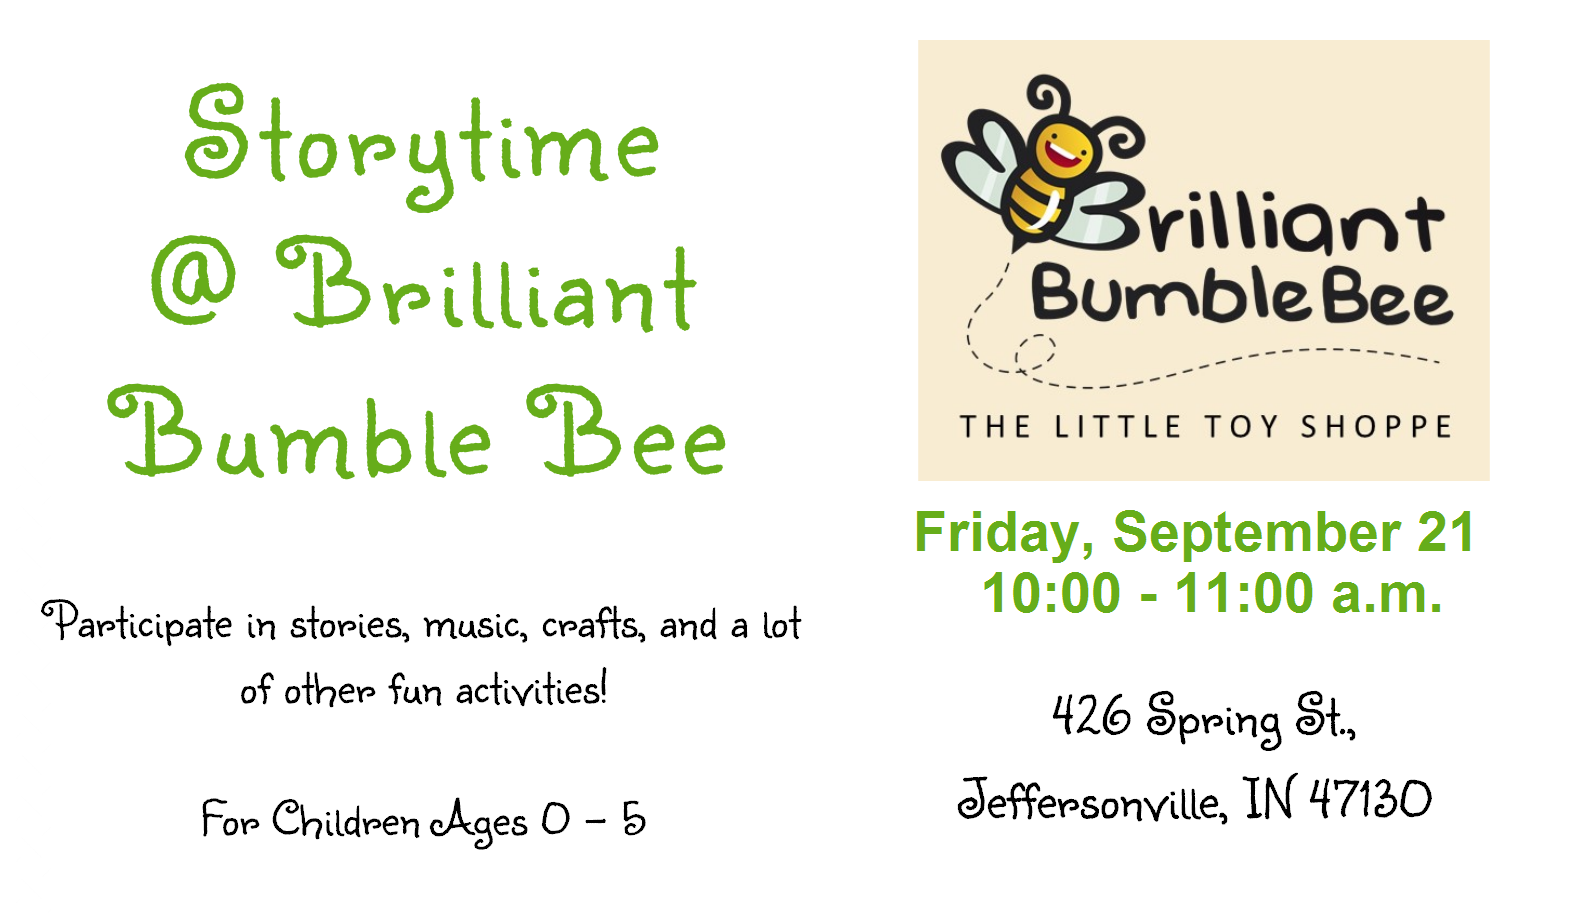 Storytime @ Brilliant Bumble Bee – September